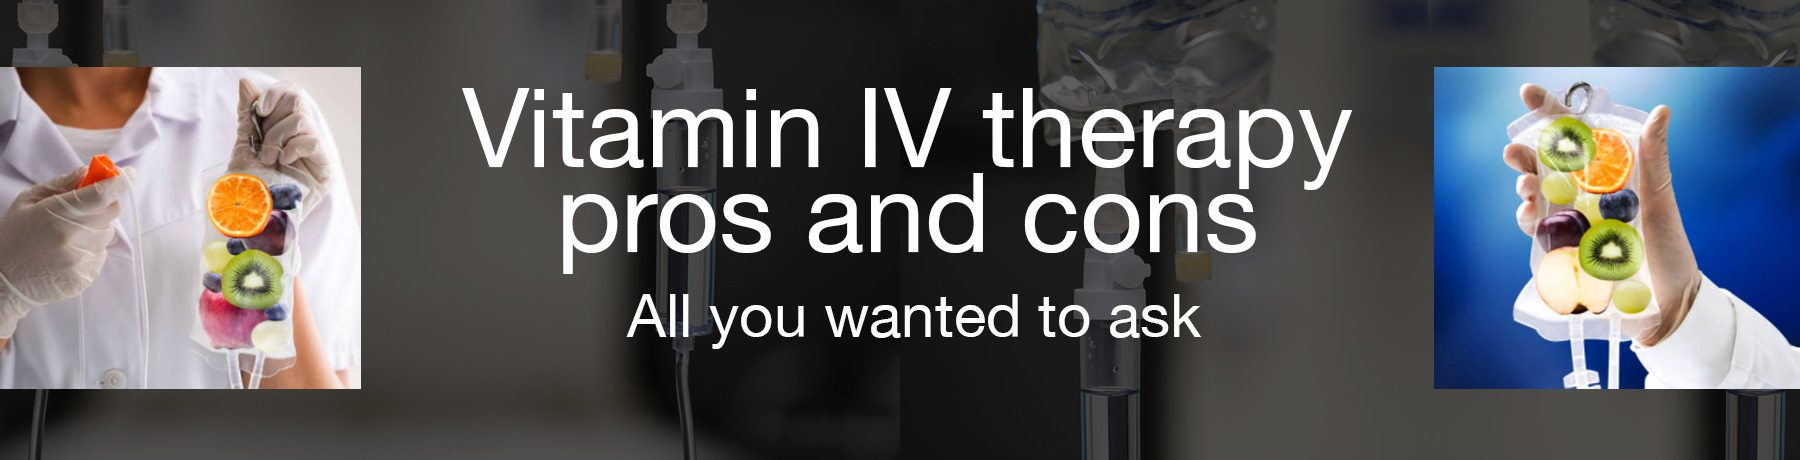 vitamin iv therapy pros and cons